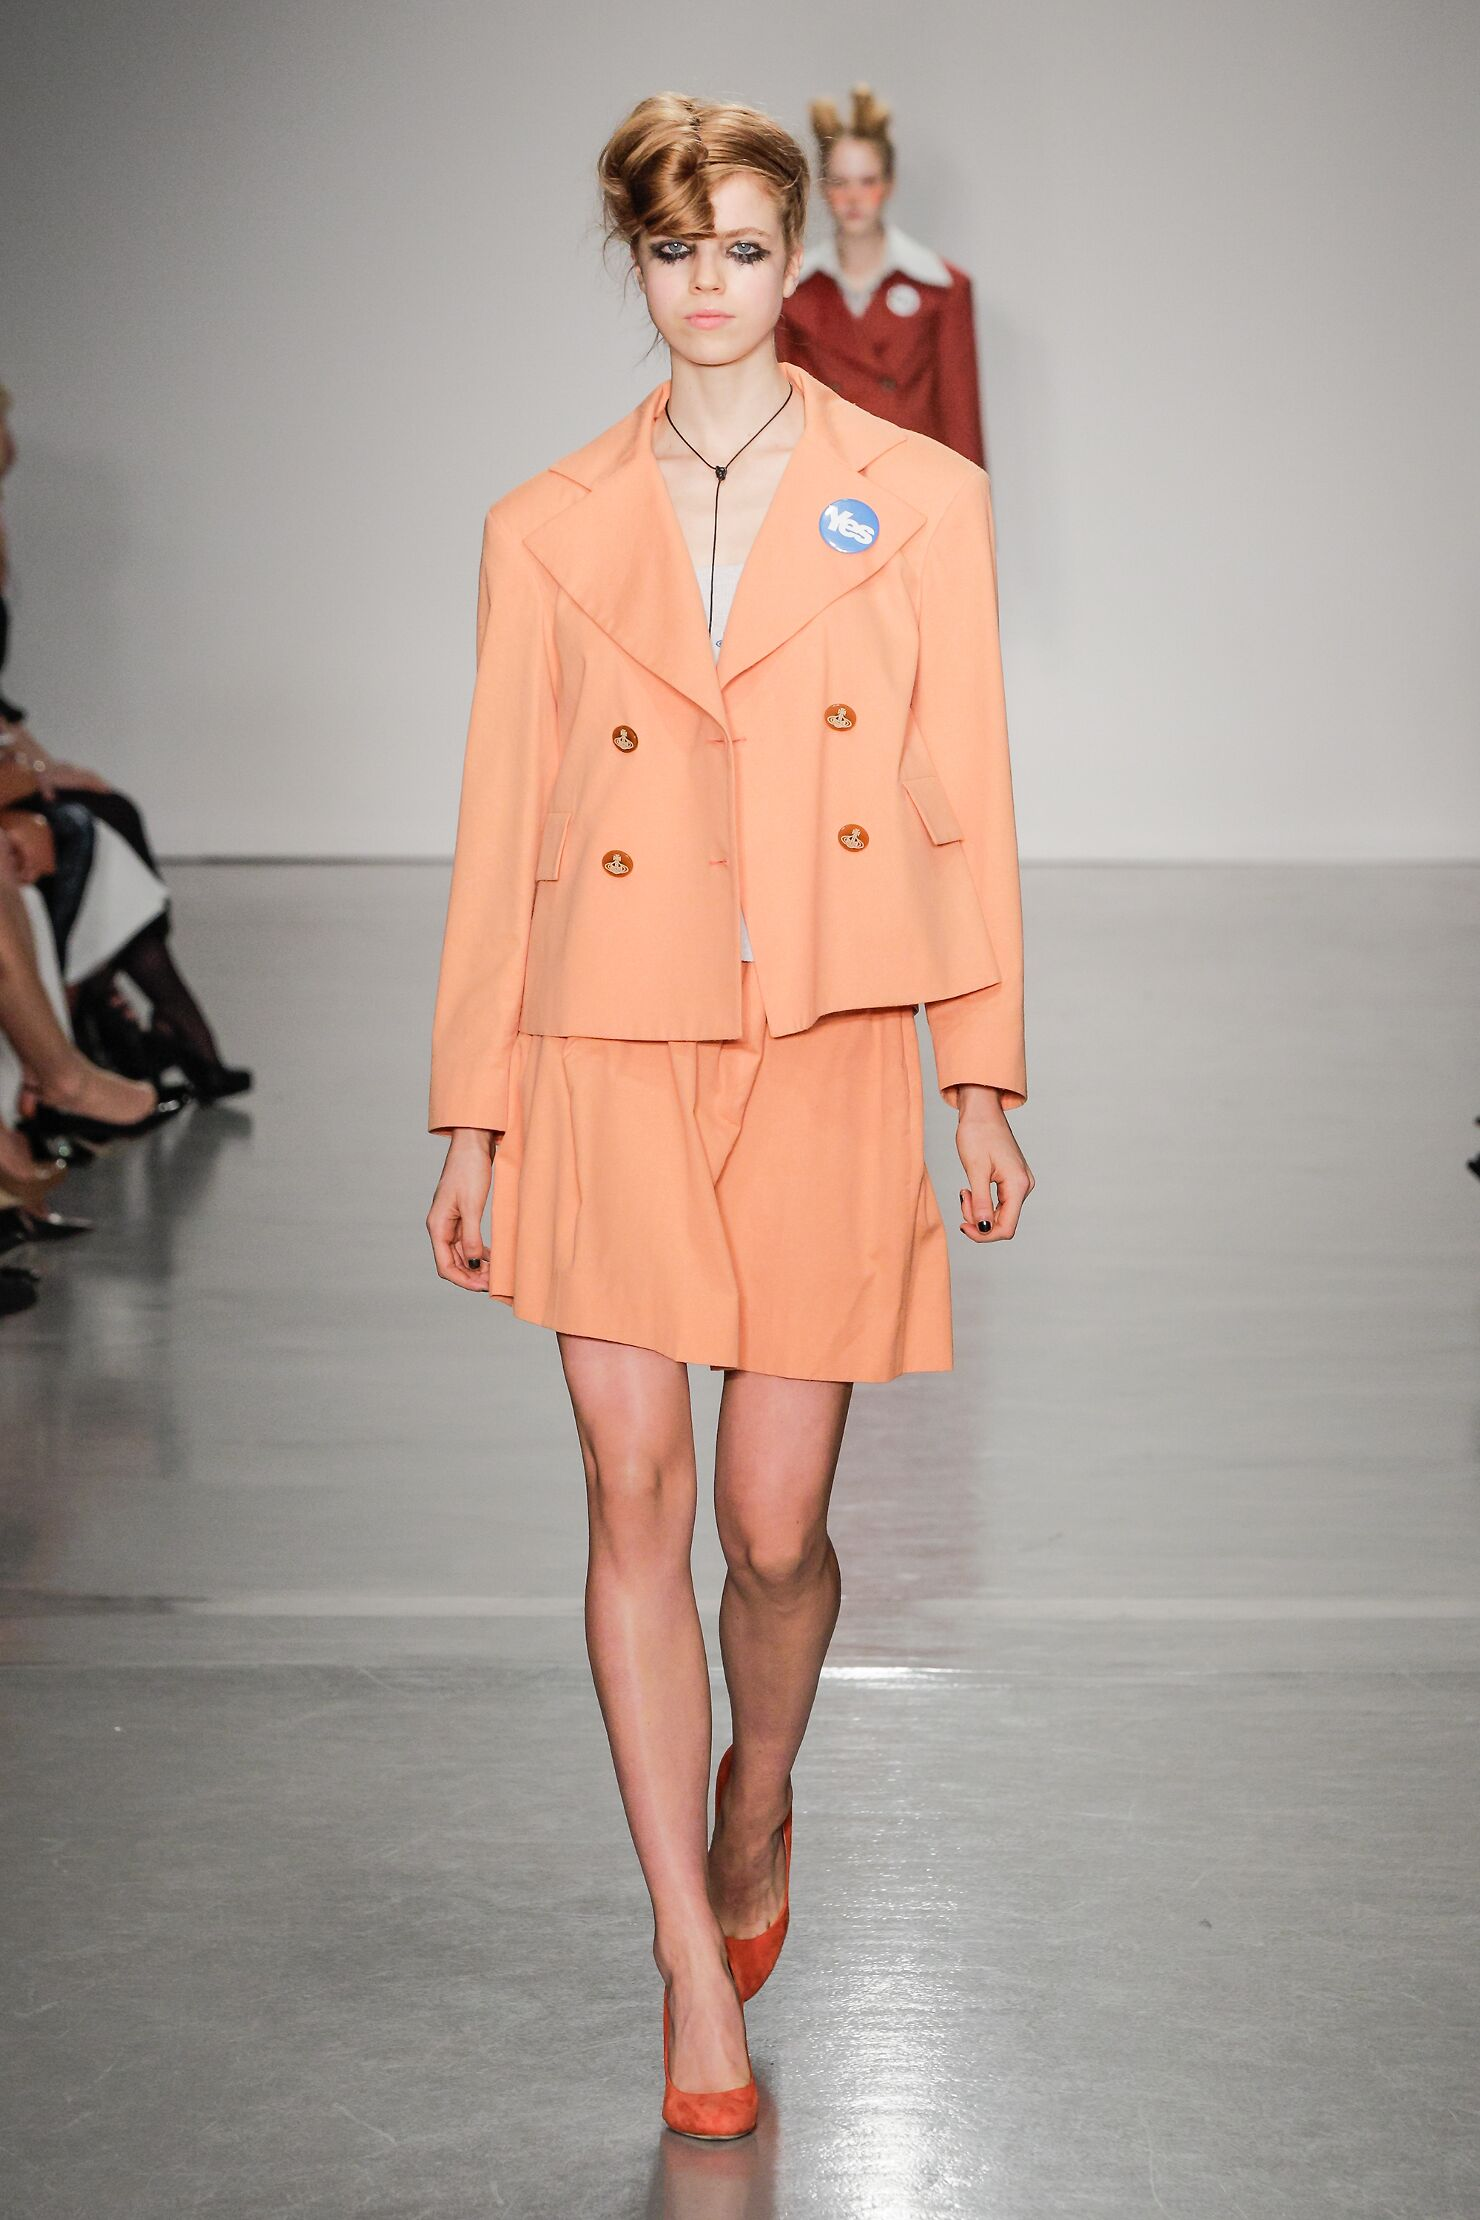 Vivienne-Westwood-Red-Label-Spring-Summer-2015-Womens-Collection-London-Fashion-Week